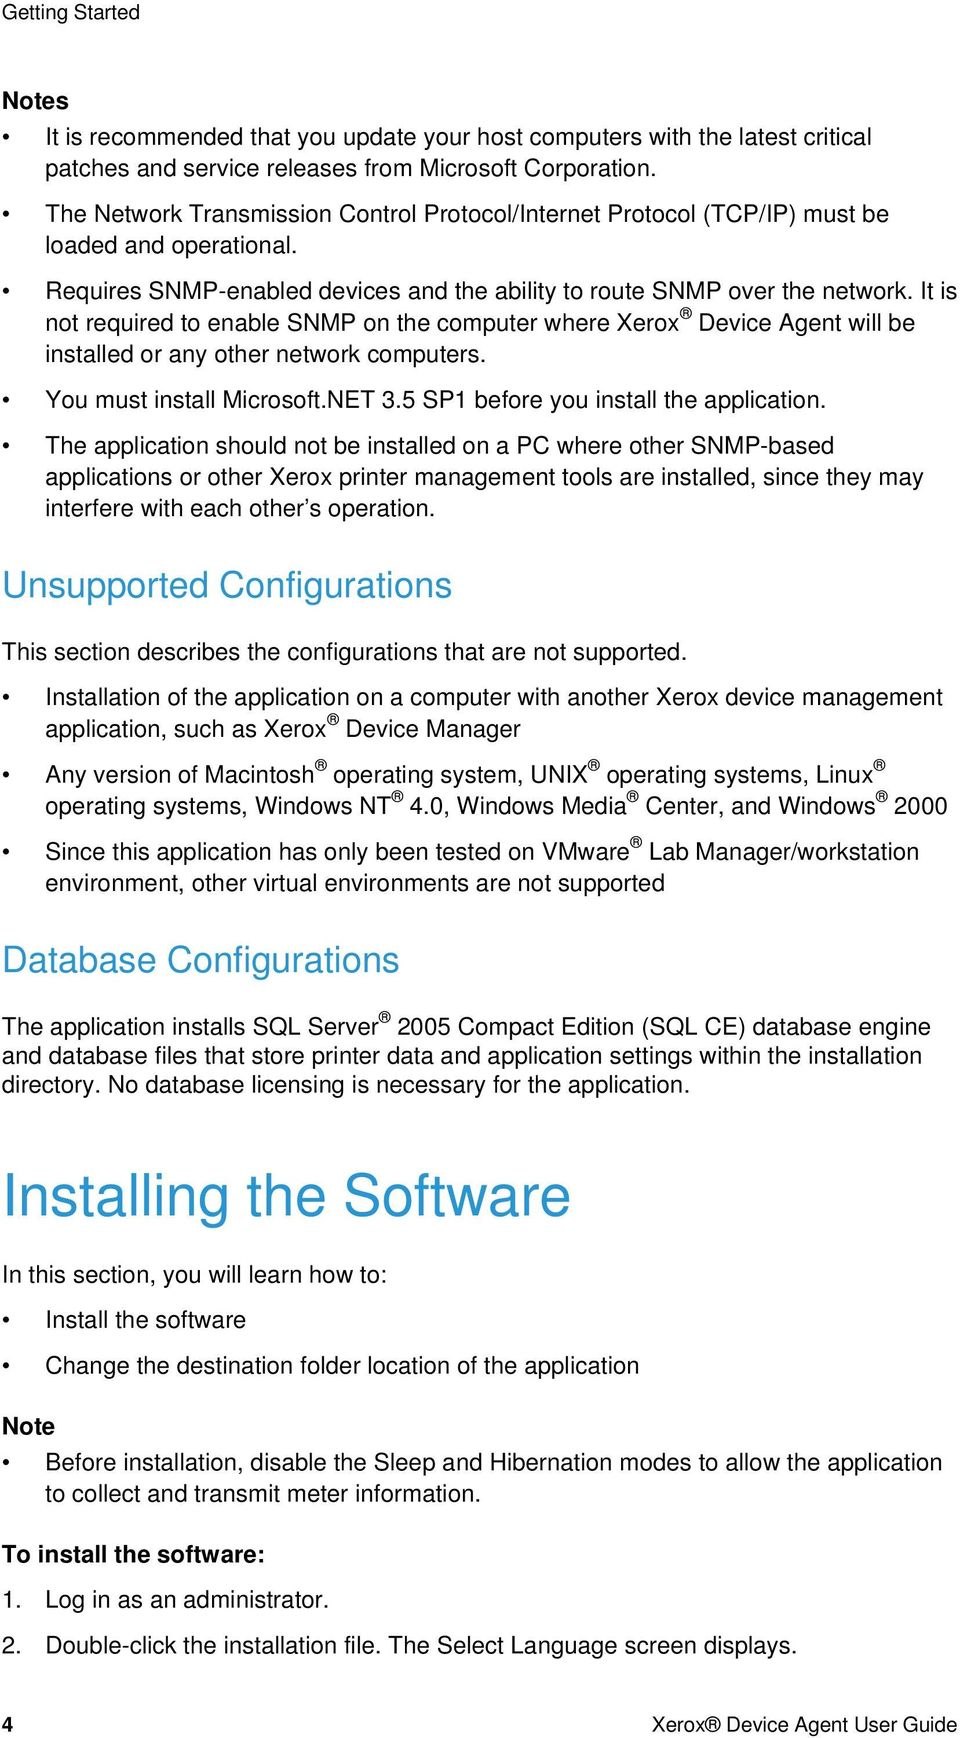 It is not required to enable SNMP on the computer where Xerox Device Agent will be installed or any other network computers. You must install Microsoft.NET 3.5 SP1 before you install the application.